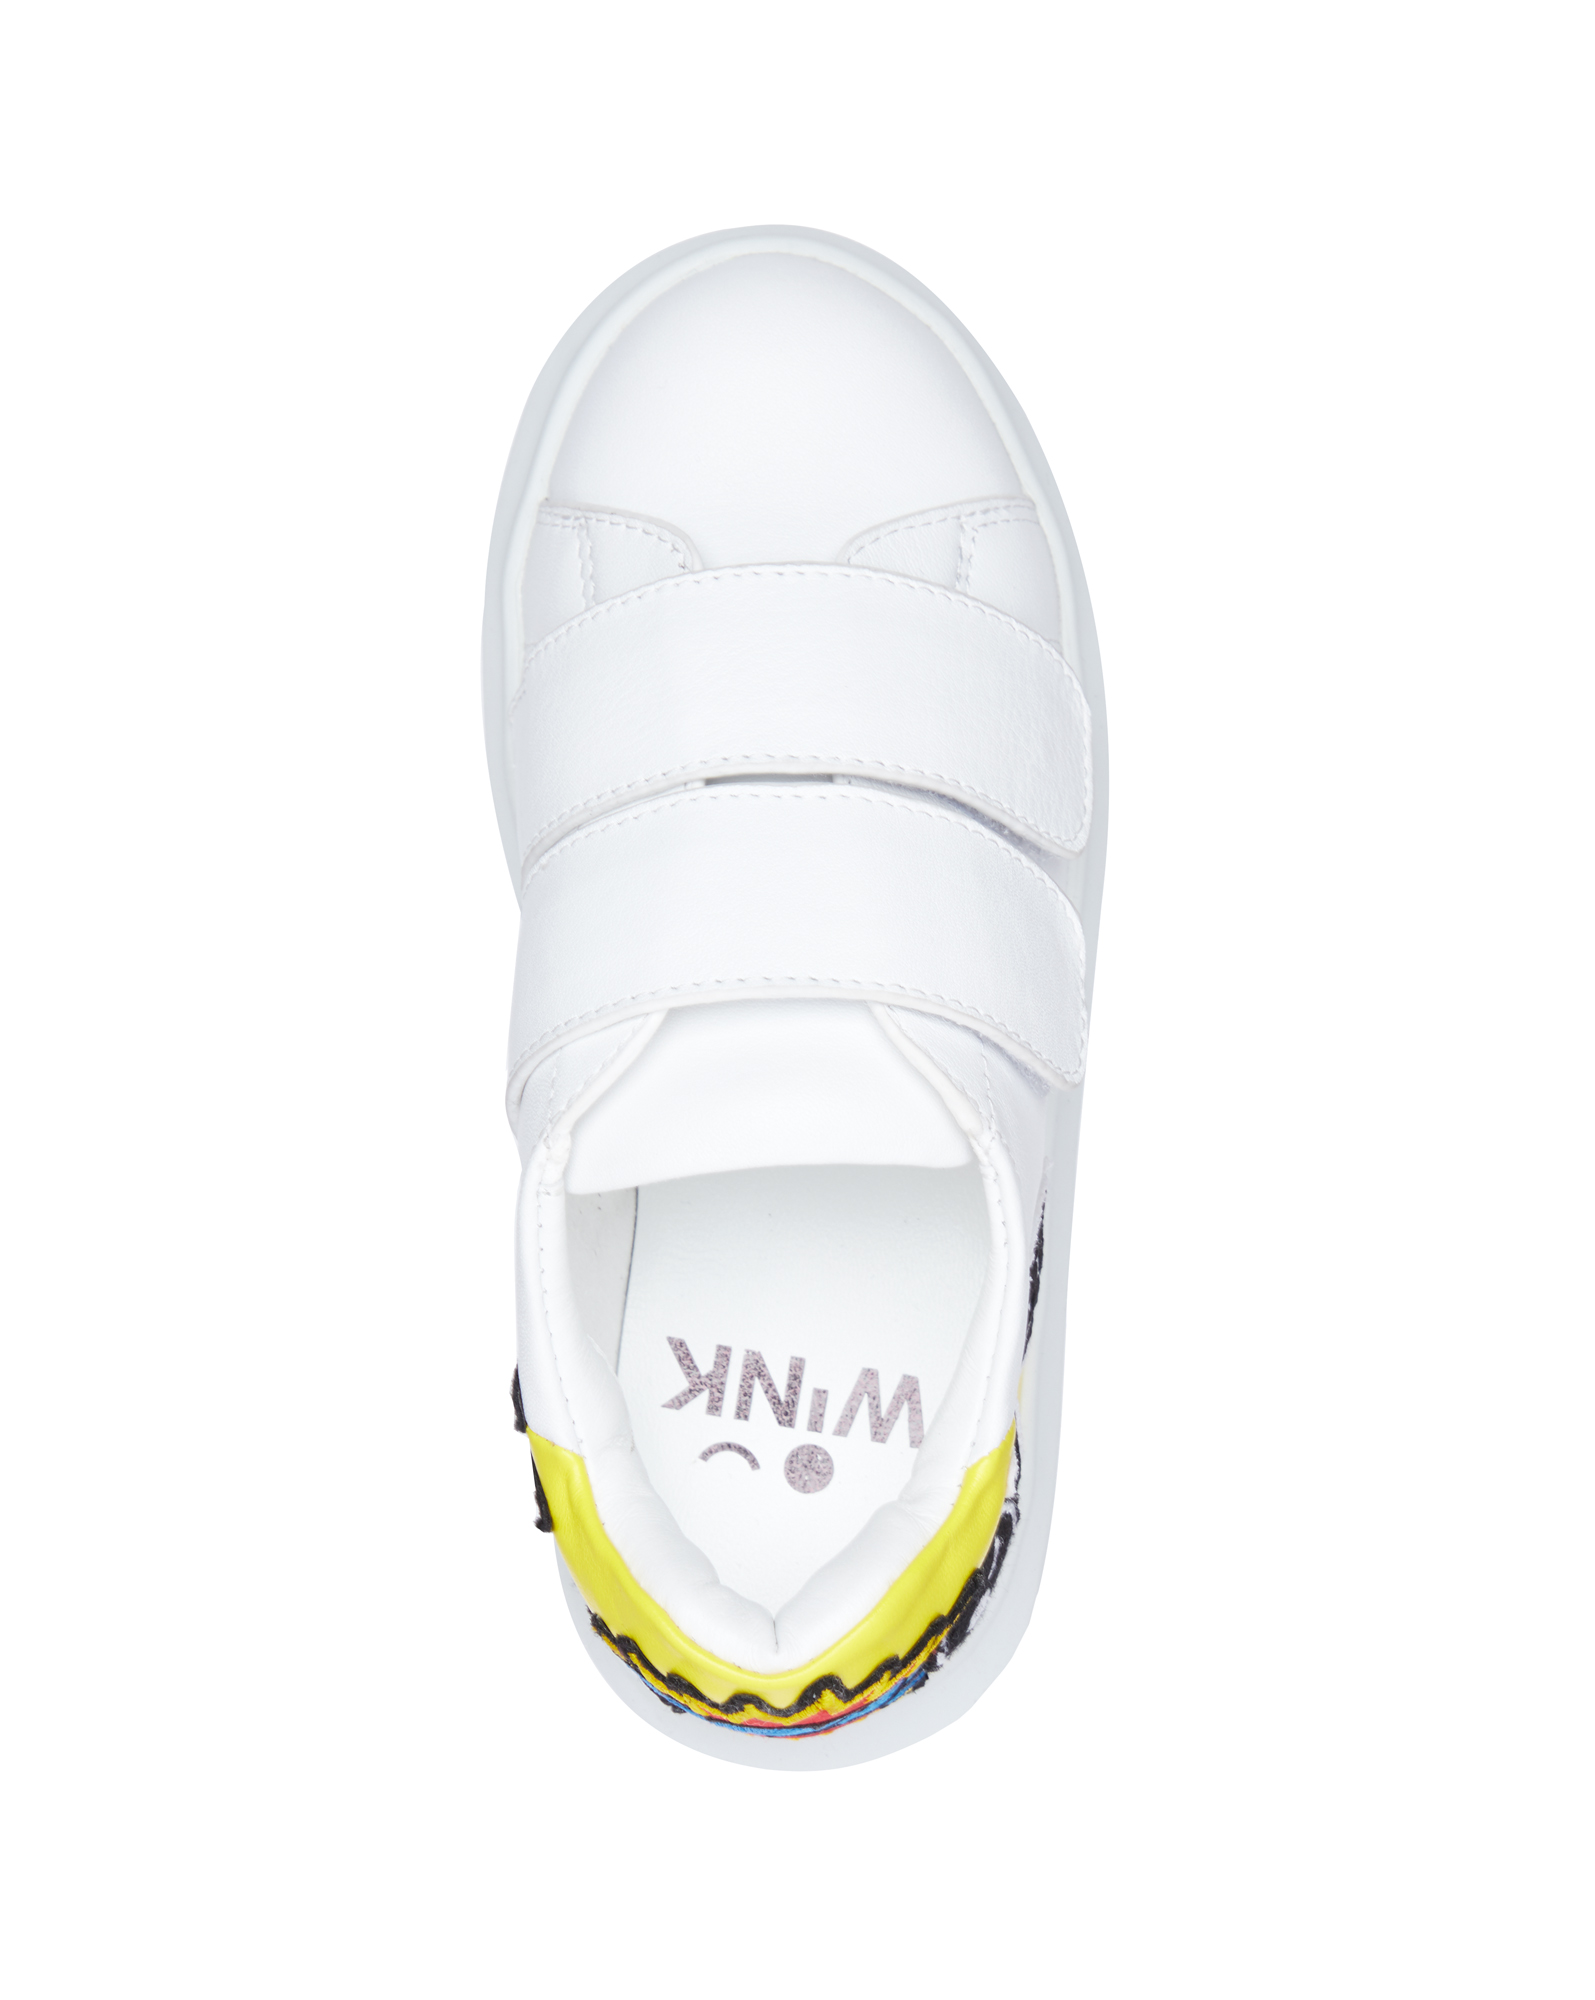 WINK SHOES 2019 008_04.jpg